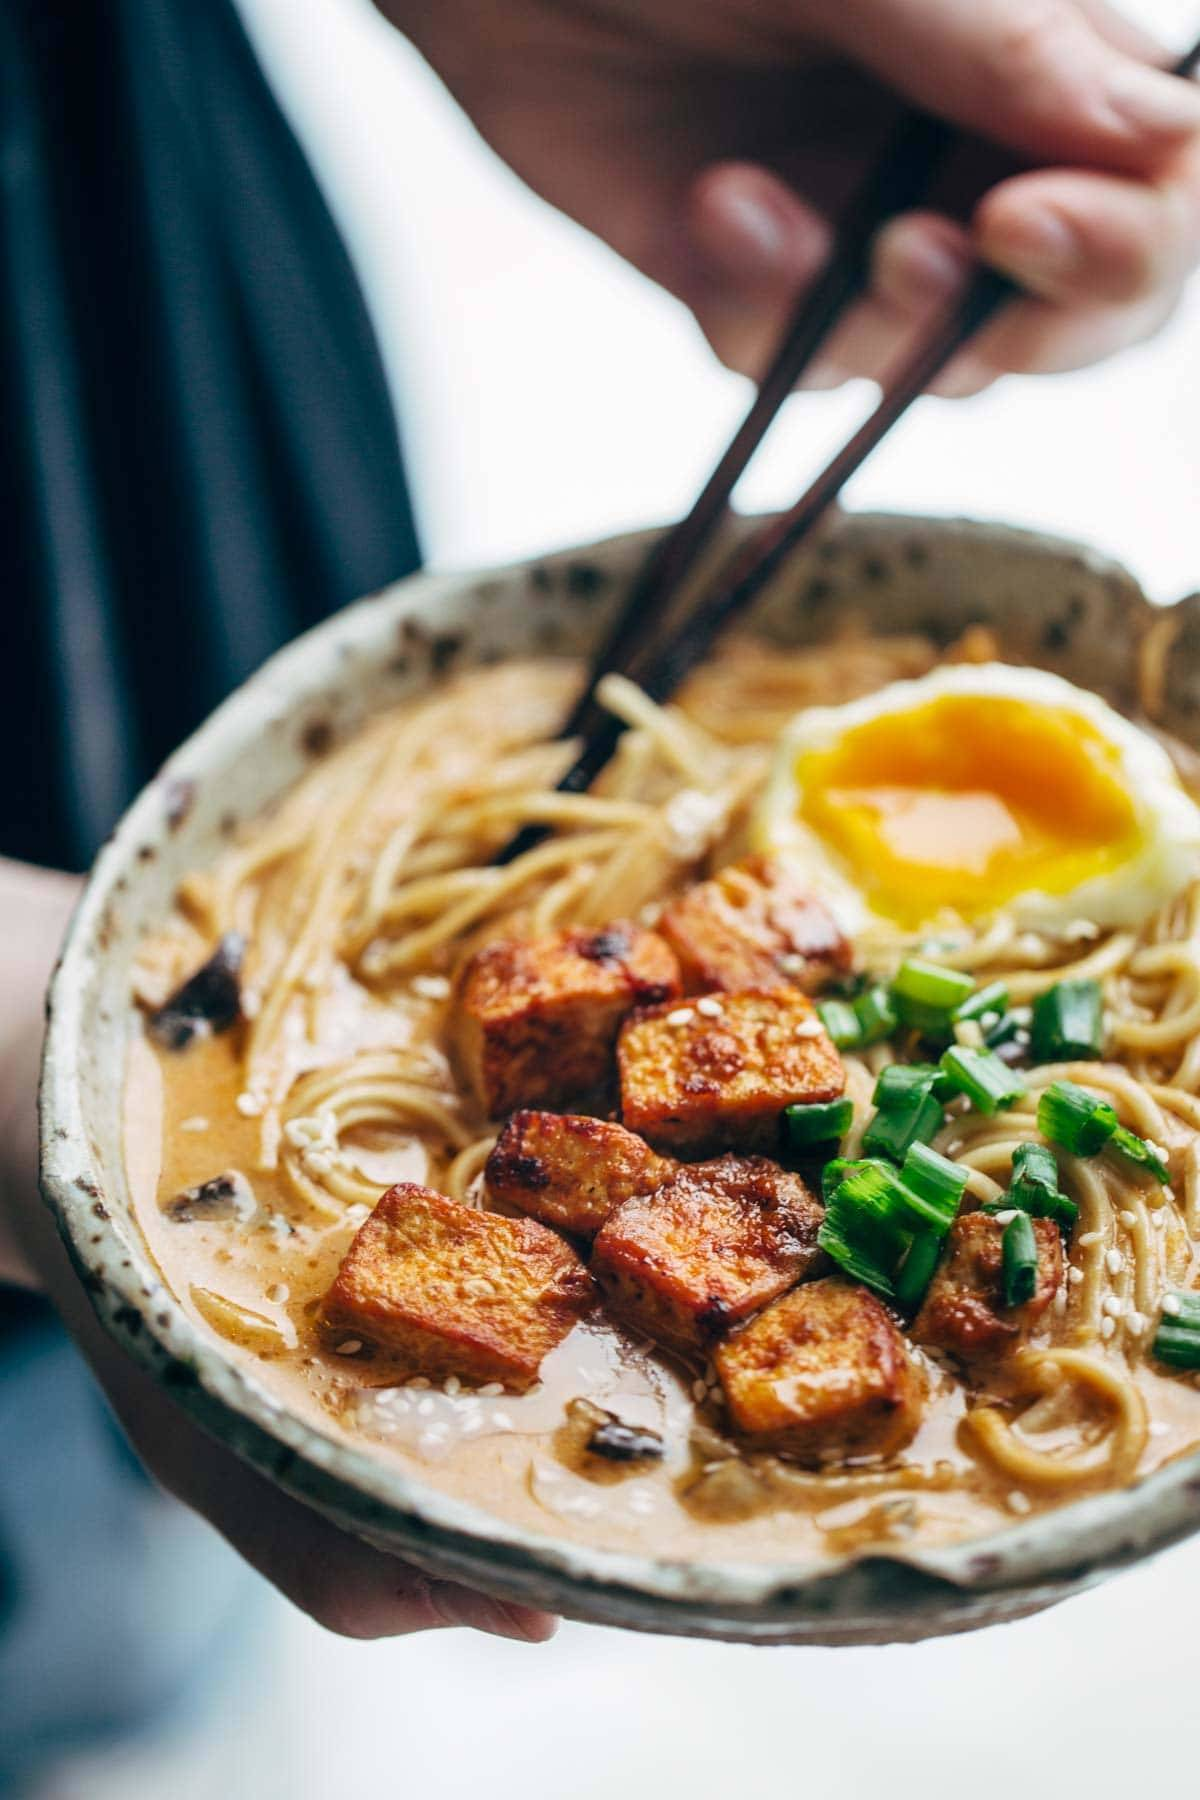 Homemade Spicy Ramen recipe with an easy spicy miso paste for the broth and dry ramen noodles that taste JUST like fresh! Vegetarian / vegan. | pinchofyum.com